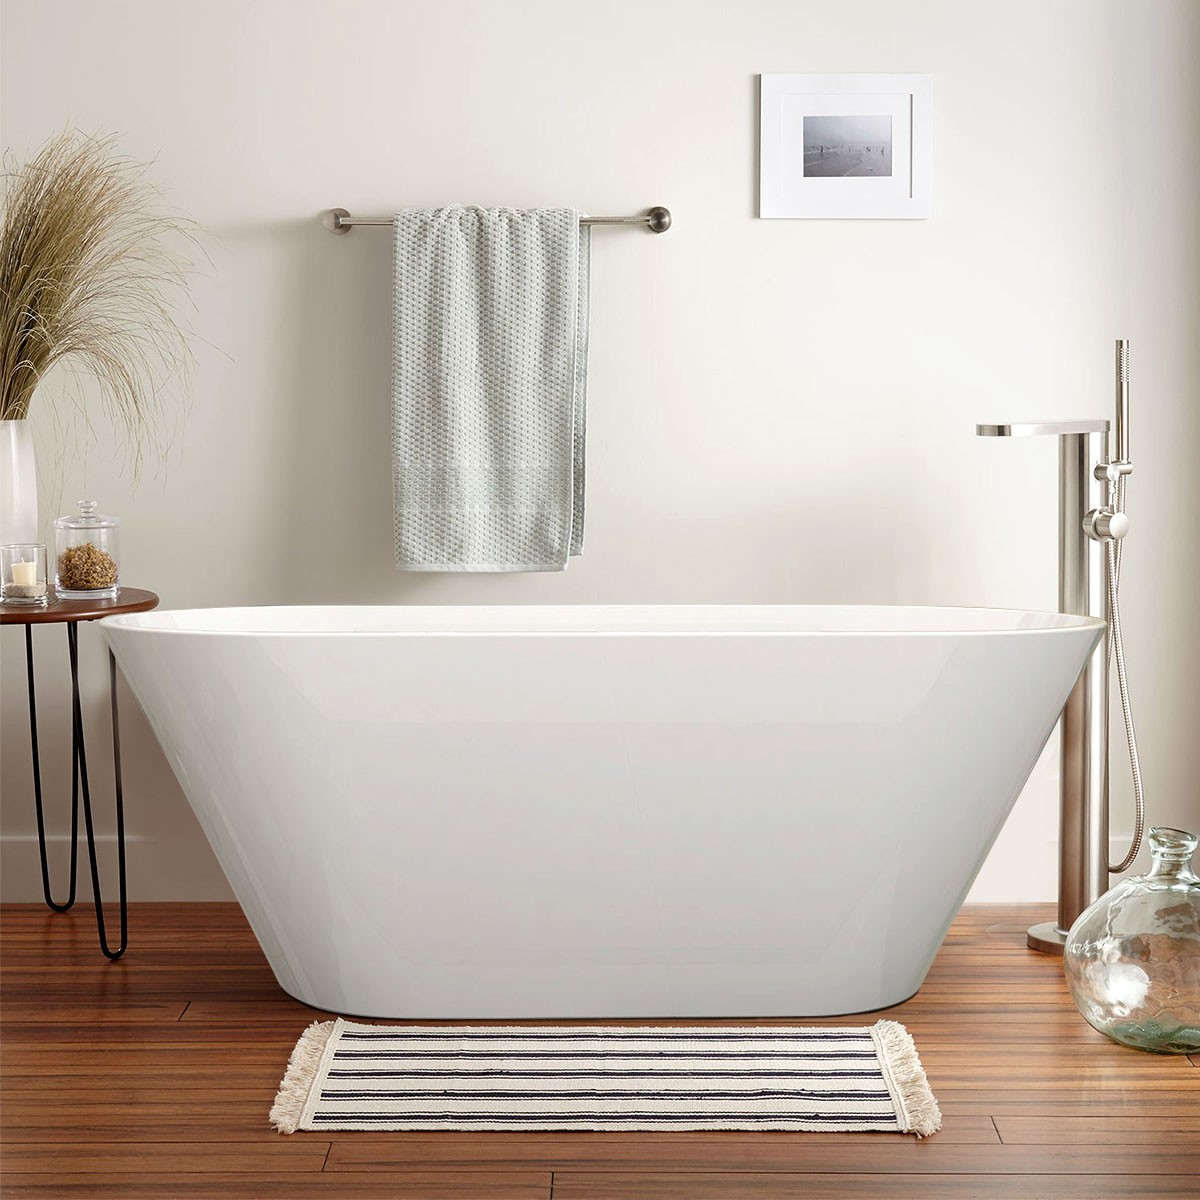 70 In Freestanding Bathtub - Acrylic Pure White (DK-PW-5878)